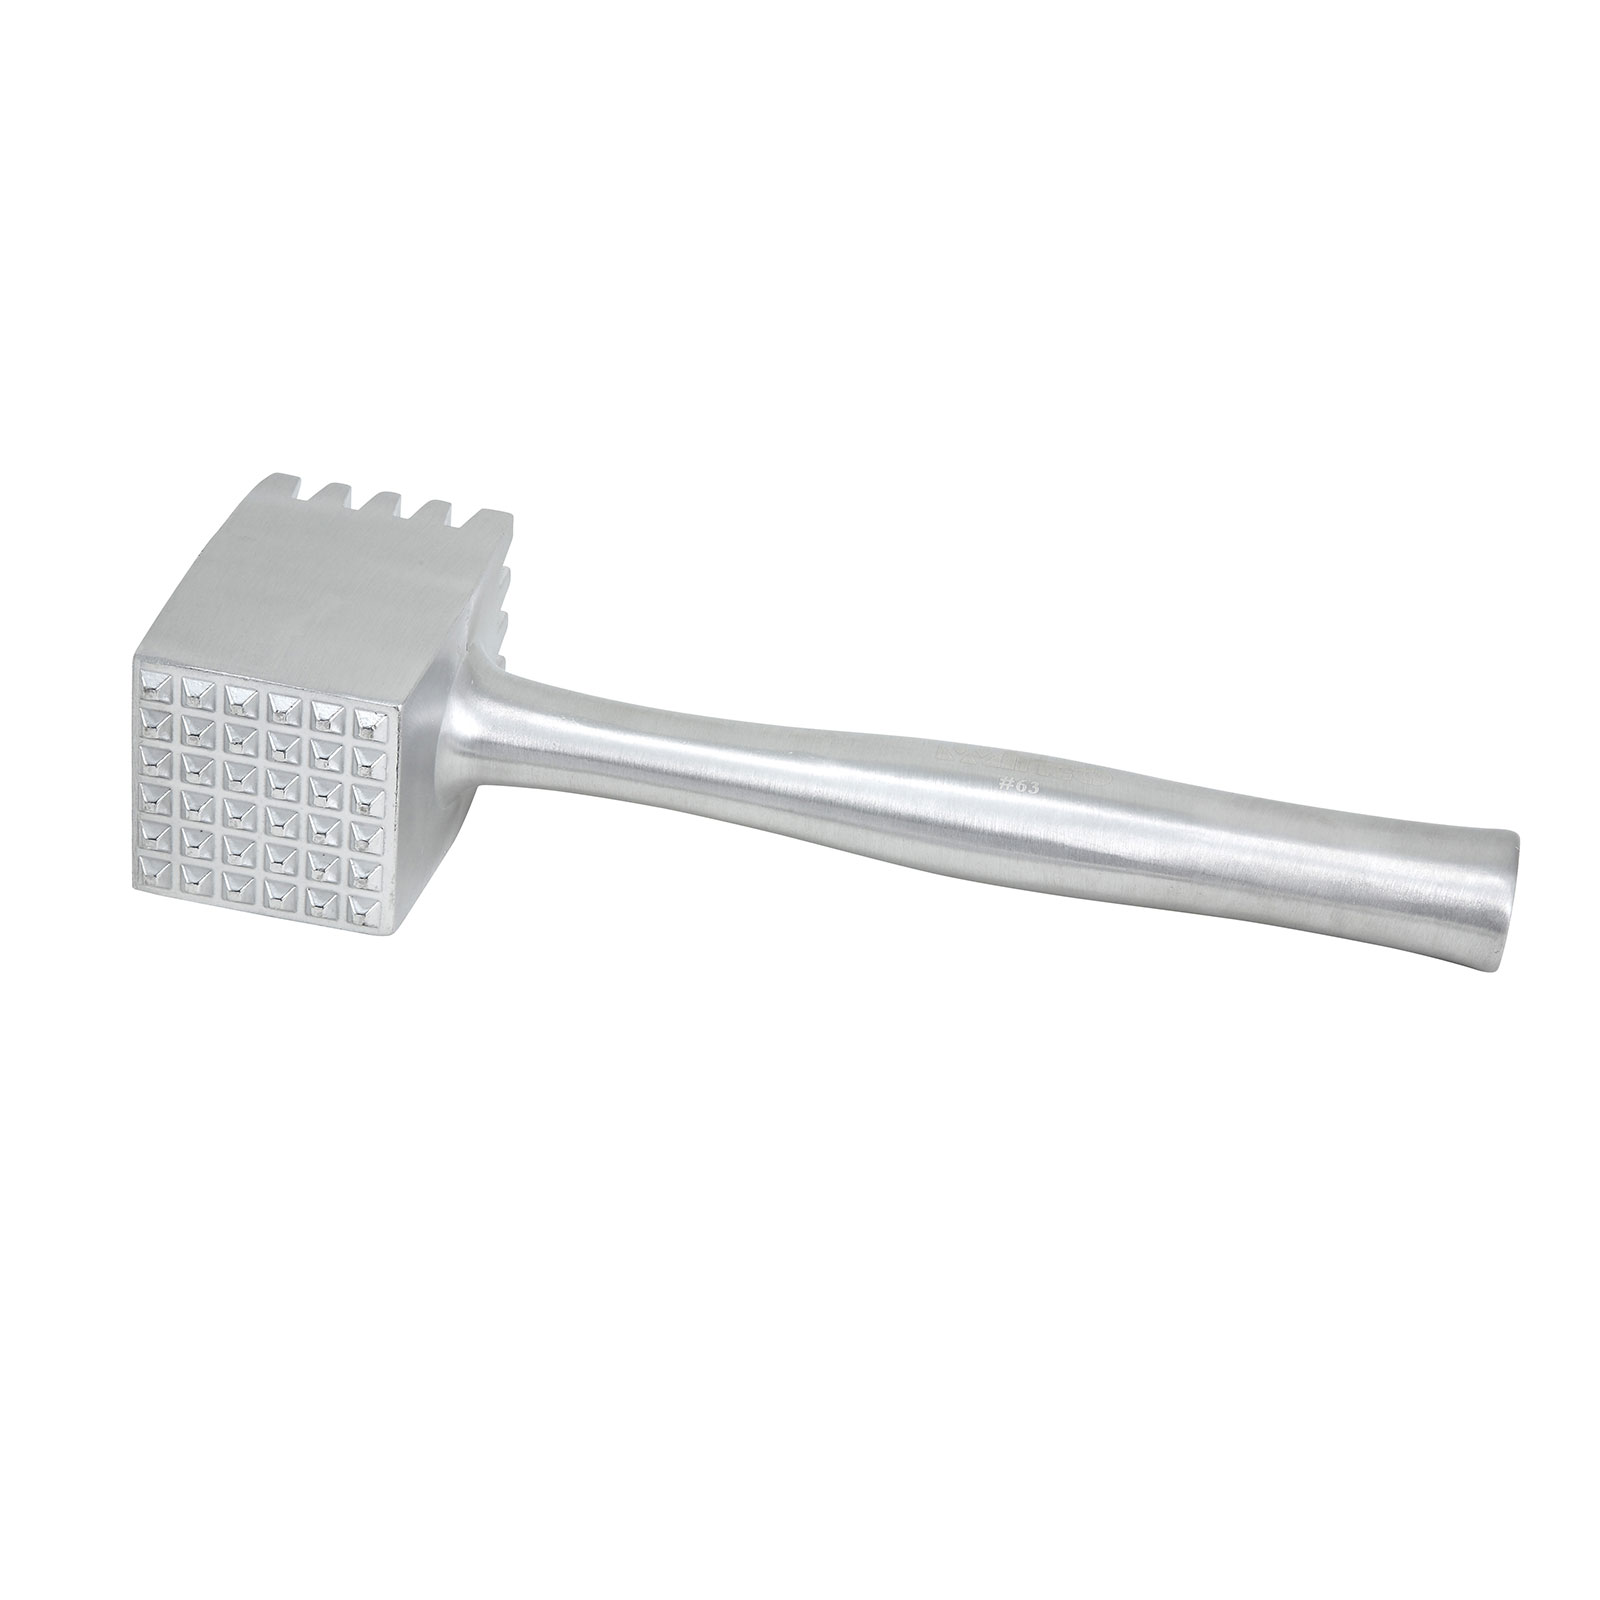 Winco AMT-4 meat tenderizer, mallet